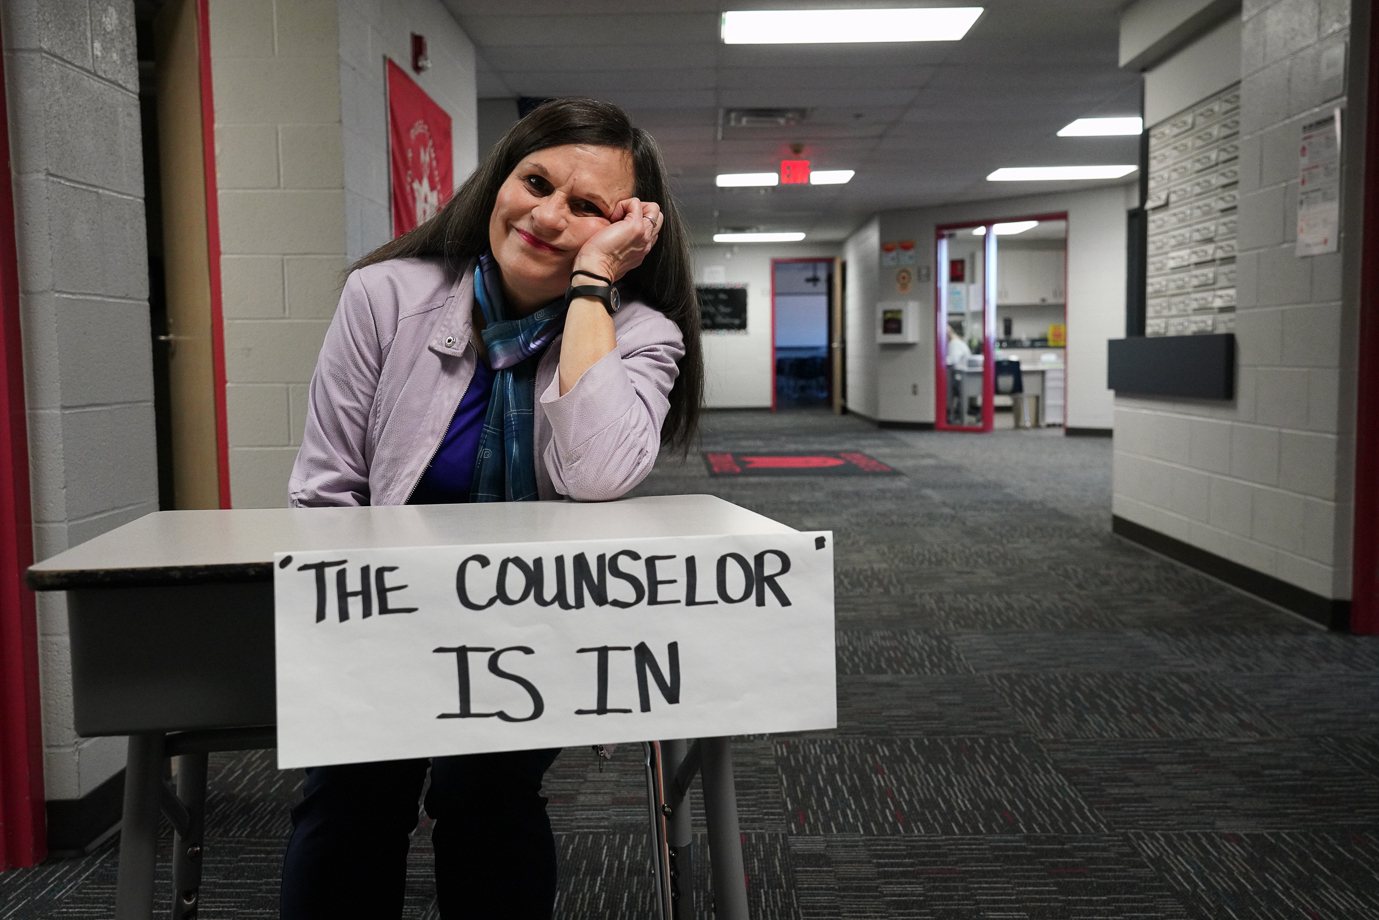 """Cedar Ridge Elementary -  Kim Strom, Counselor Counselor Kim Strom has been named the Cedar Ridge Teacher of the year for 2019-2020. """"Even from my youth, I have had a desire and a sense of purpose in helping people,"""" Strom said. """"As a school counselor, there are so many situations where reaching out to students and families is prime. My position is so diversified in that I have the opportunity to interact with individual and small groups of children, parents and families, staff, PTA, and community members.  I also am privileged to go multiple times into all of the regular classes to teach lessons that help promote good character, anti-bullying and safety.""""  Strom likes to teach lessons that will influence students all of their lives, such as, The Seven Habits of Happy Kids.  """"The information provides applicable and pertinent life skills.  The students can engage in fun and playful activities and can acquire knowledge without even realizing they are learning.  I enjoy sensing their excitement.  Strom started as the counselor for the """"Advancing Children Toward Success"""" (A.C.T.S.) pilot program at Roy Clark Elementary in January of 2000.  Later, she served as Briarglen's counselor for five years. She is currently in my 14th year as counselor at Cedar Ridge. Strom's education background: •B.A. Degree in Psychology from Olivet Nazarene College •Teaching Certification through course work at Azusa Pacific College •M.S. Degree in Counseling Psychology from Northeastern State University •1-year certificate from Rhema Bible Training Center •Course work through Plumbline Ministries •Mandt Training Certificate through Union Public Schools •Adult and Pediatric First Aid/CPR/AED through the Red Cross"""